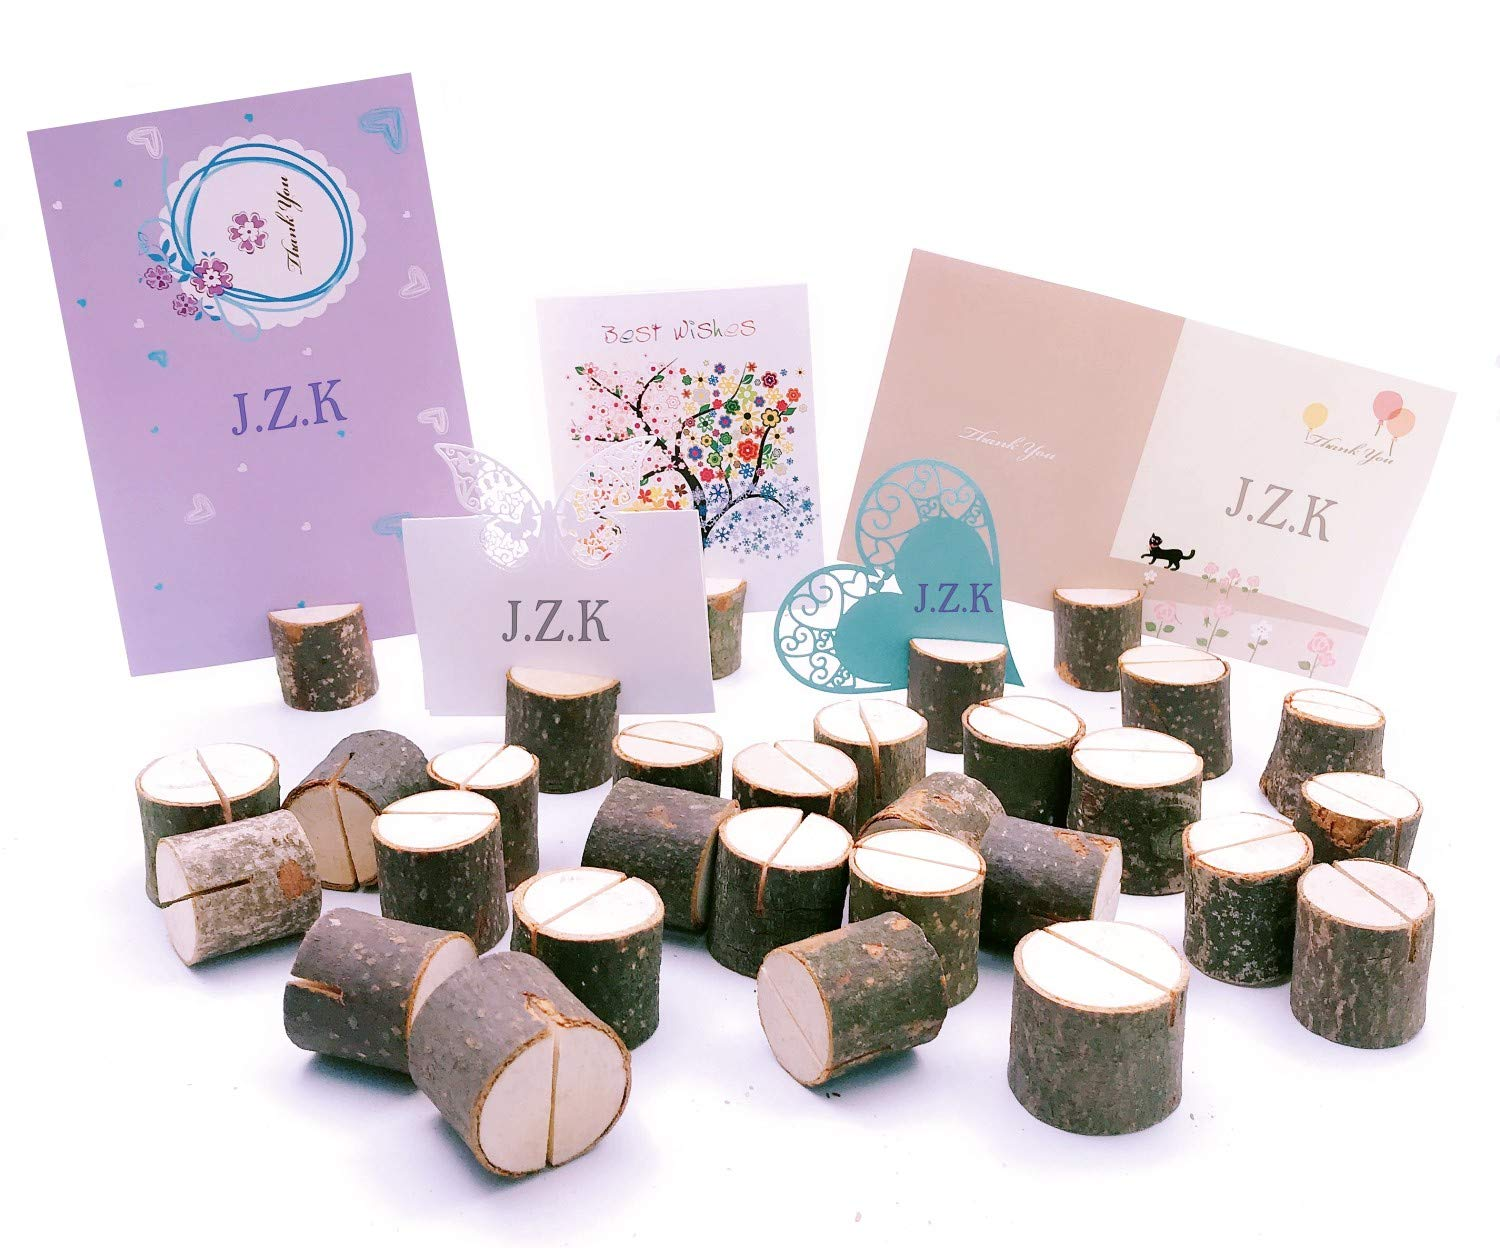 JZK 30 x Real Wood Wedding Table Number Holders Name Card Photo memo Place Card Holder Stand for Rustic Theme Wedding Christmas Birthday Garden BBQ Party